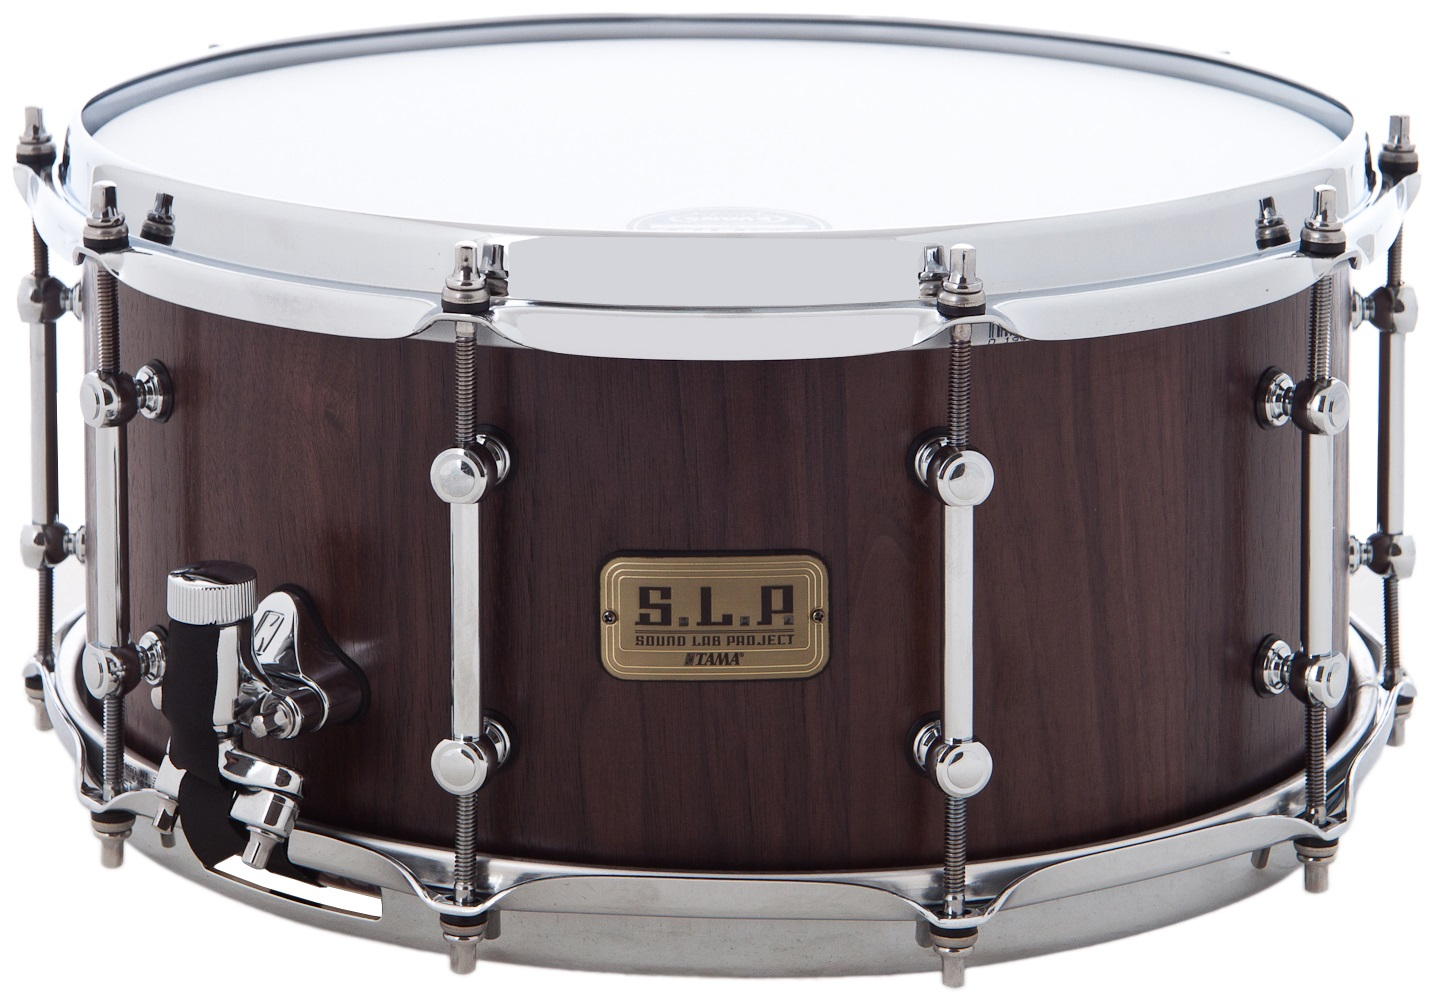 "Fotografie Tama 14"" x 6,5 Sound Lab Project G-Walnut"